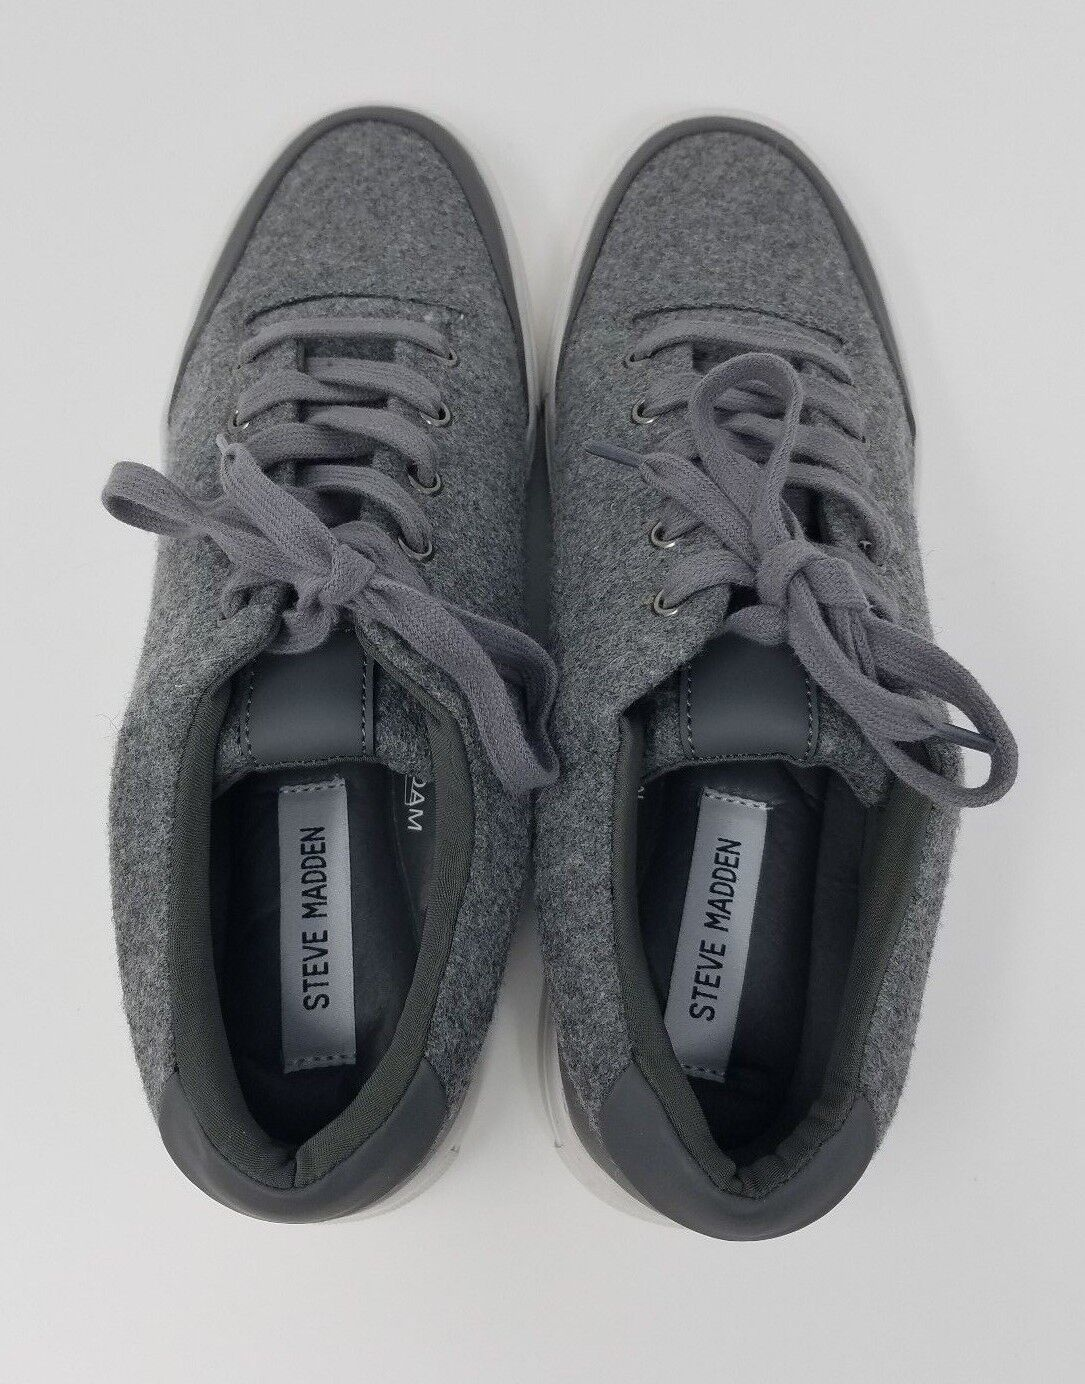 cb8e76d5dd6 Steve Madden P-yasser Men s Fuzzy Gray Lo Tops Lace Shoes SNEAKERS Size 8  1135 for sale online